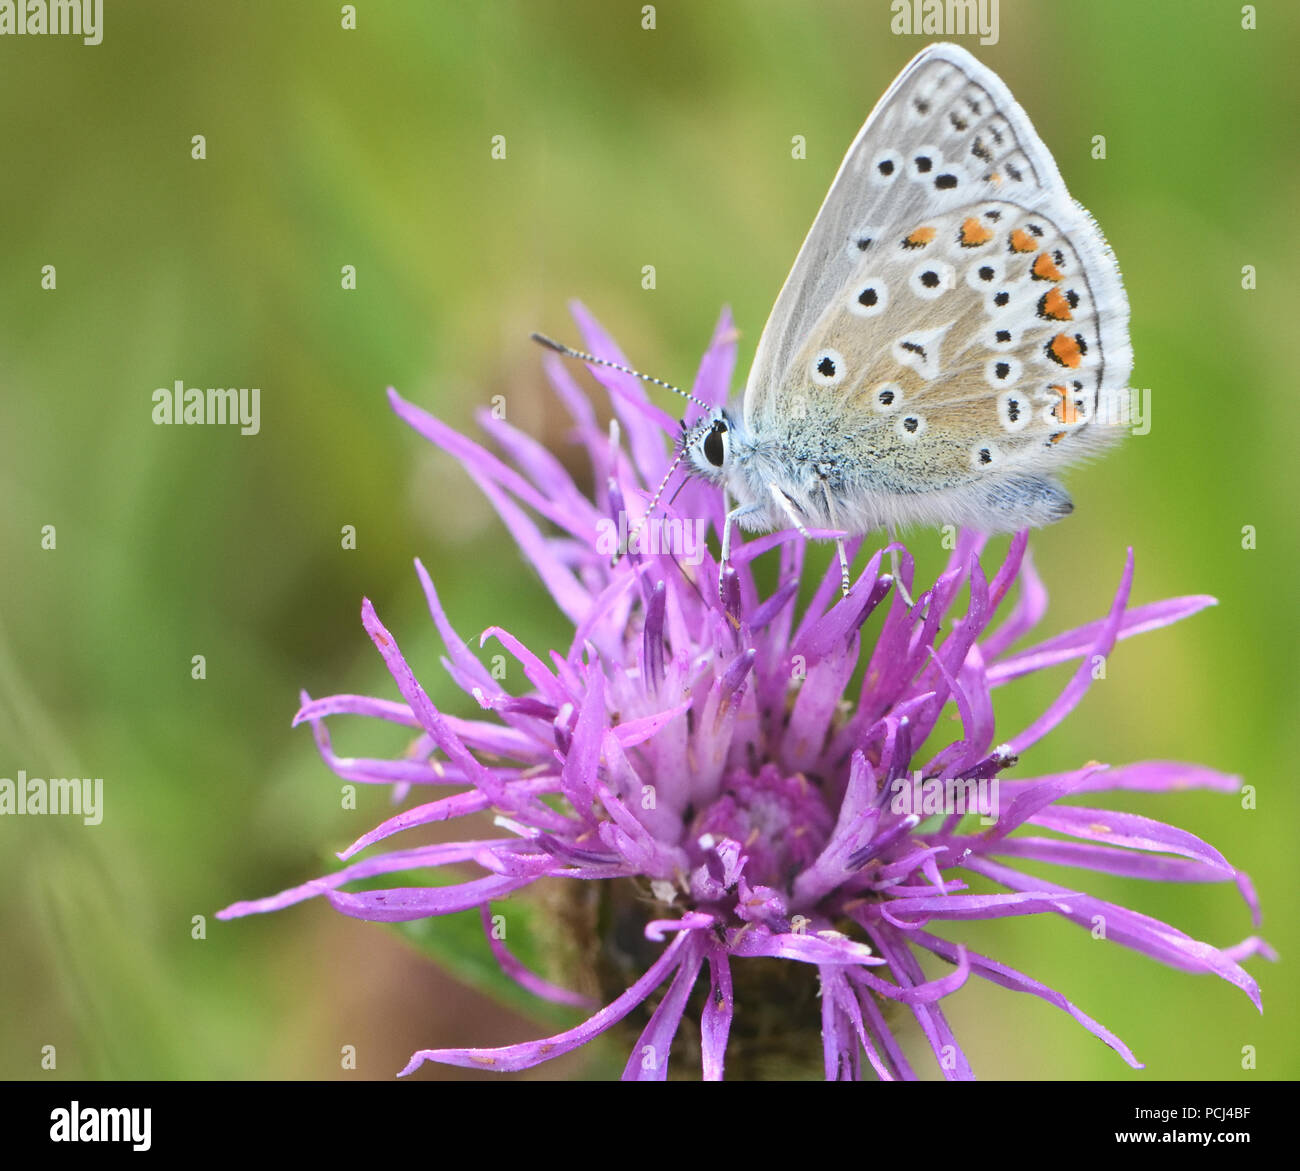 A male common blue butterfly (Polyommatus Icarus) feeds with its proboscis stretching deep into a flower of Common Knapweed (Centaurea nigra). Bedgebu - Stock Image